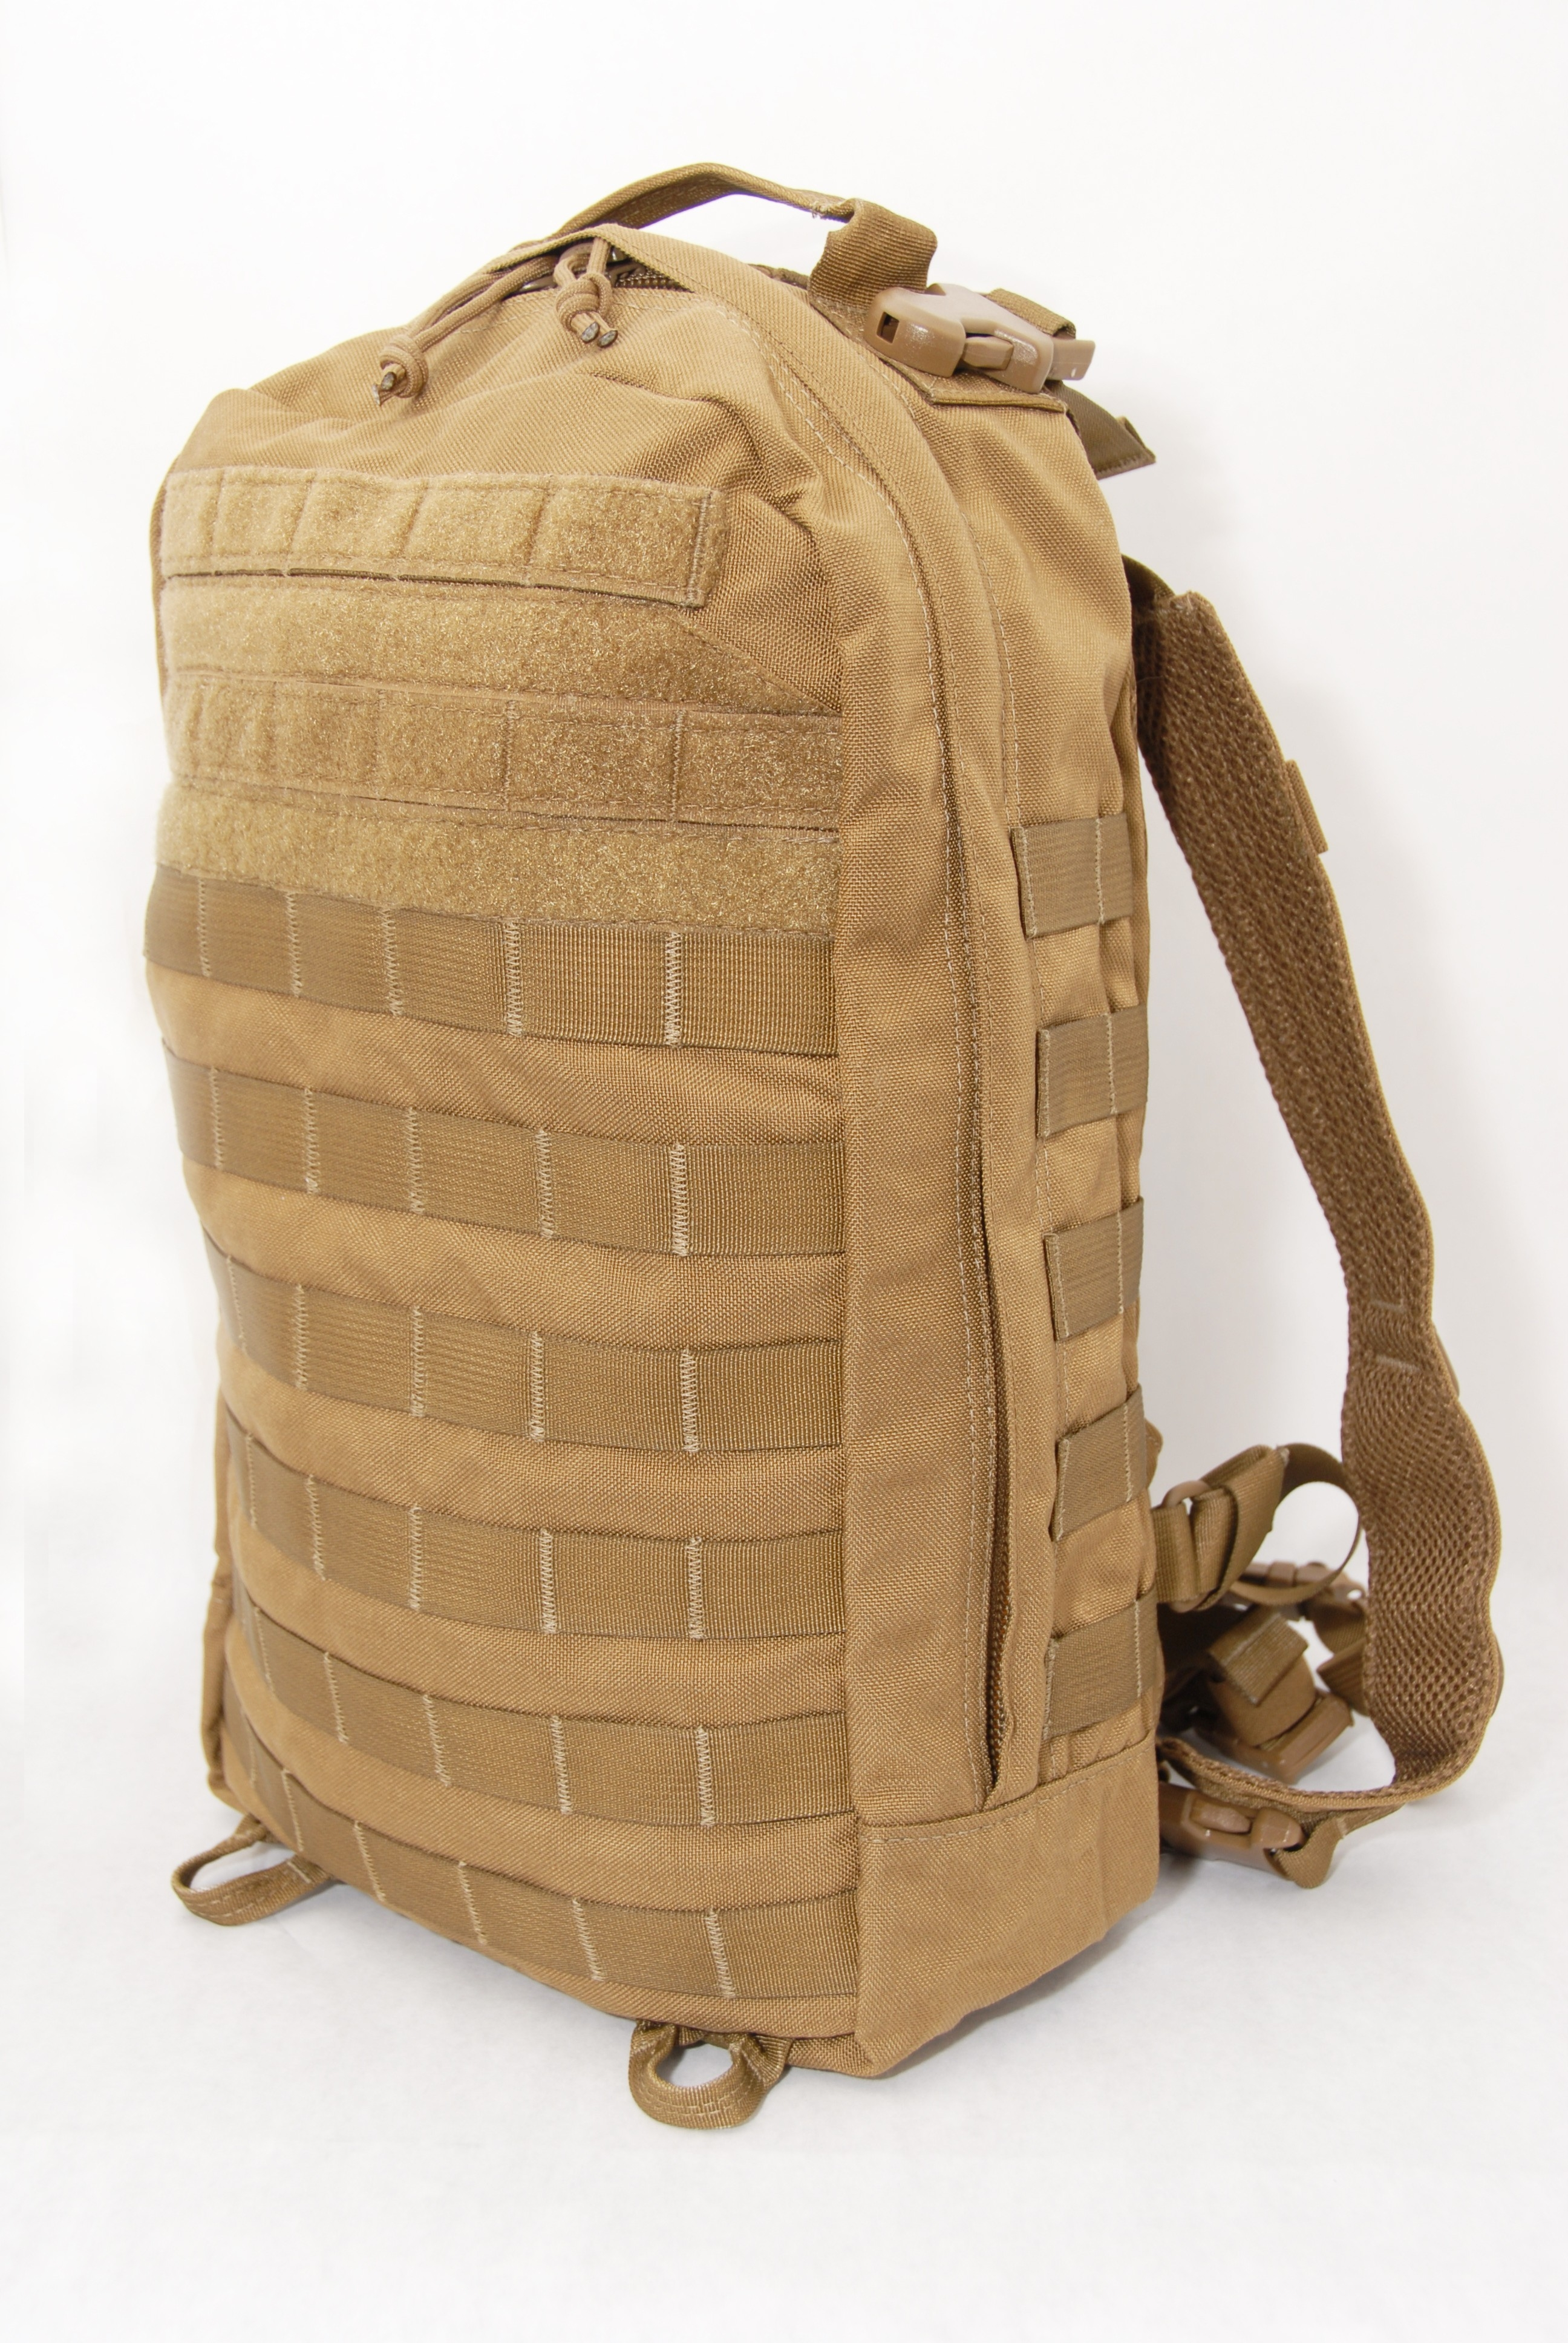 US Palm DRACO Hardened Backpack in Ranger Green